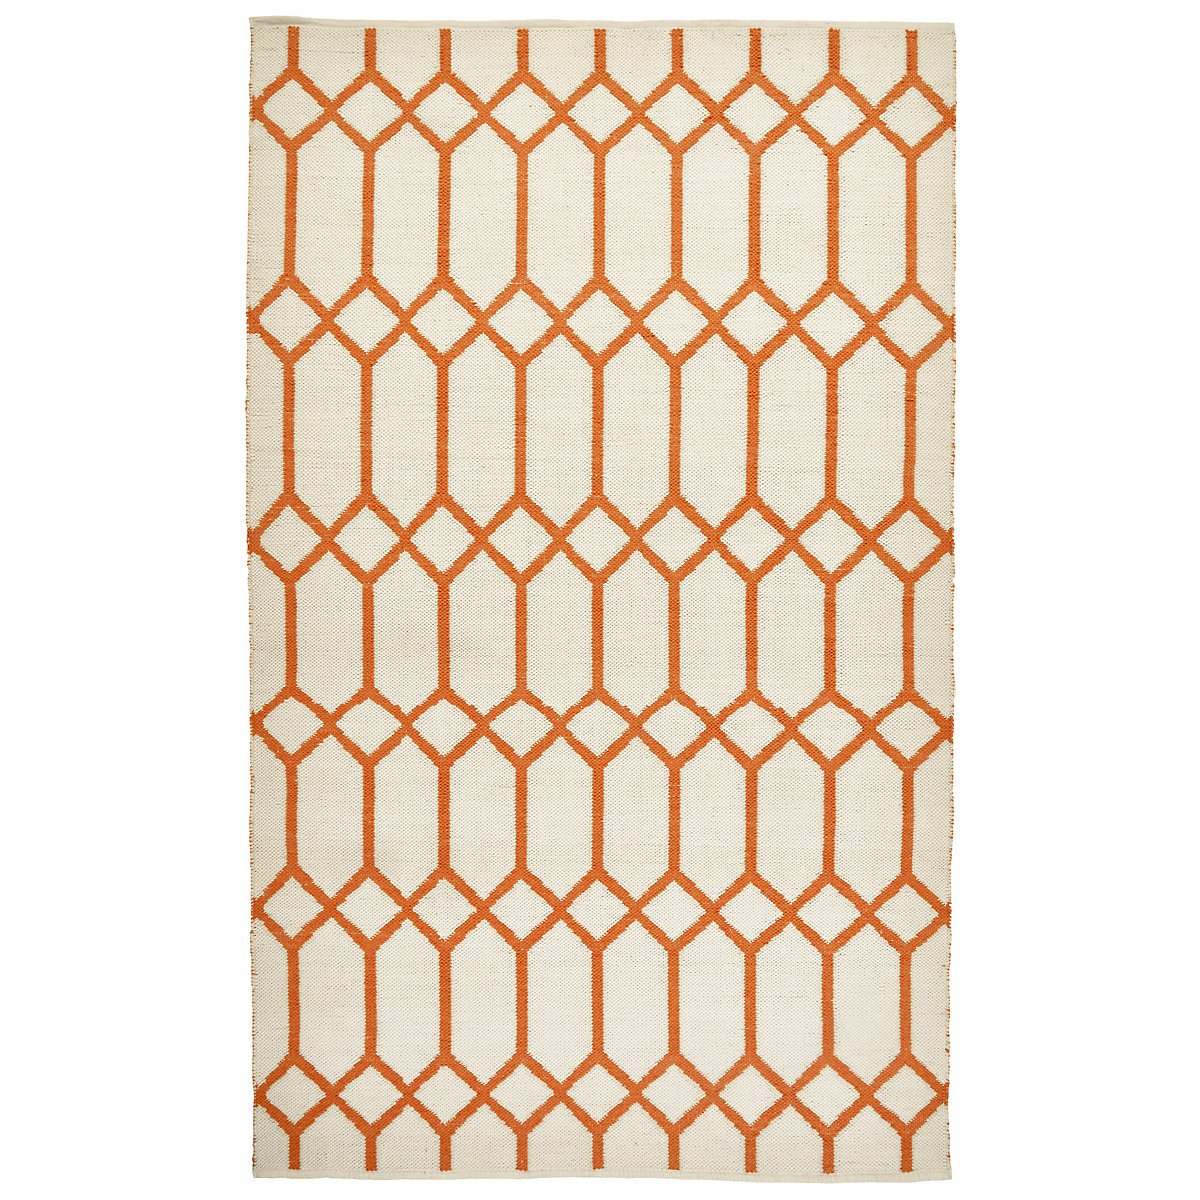 Caro Orange Poly Indoor Outdoor 2x3 Area Rug Rugs City Furniture